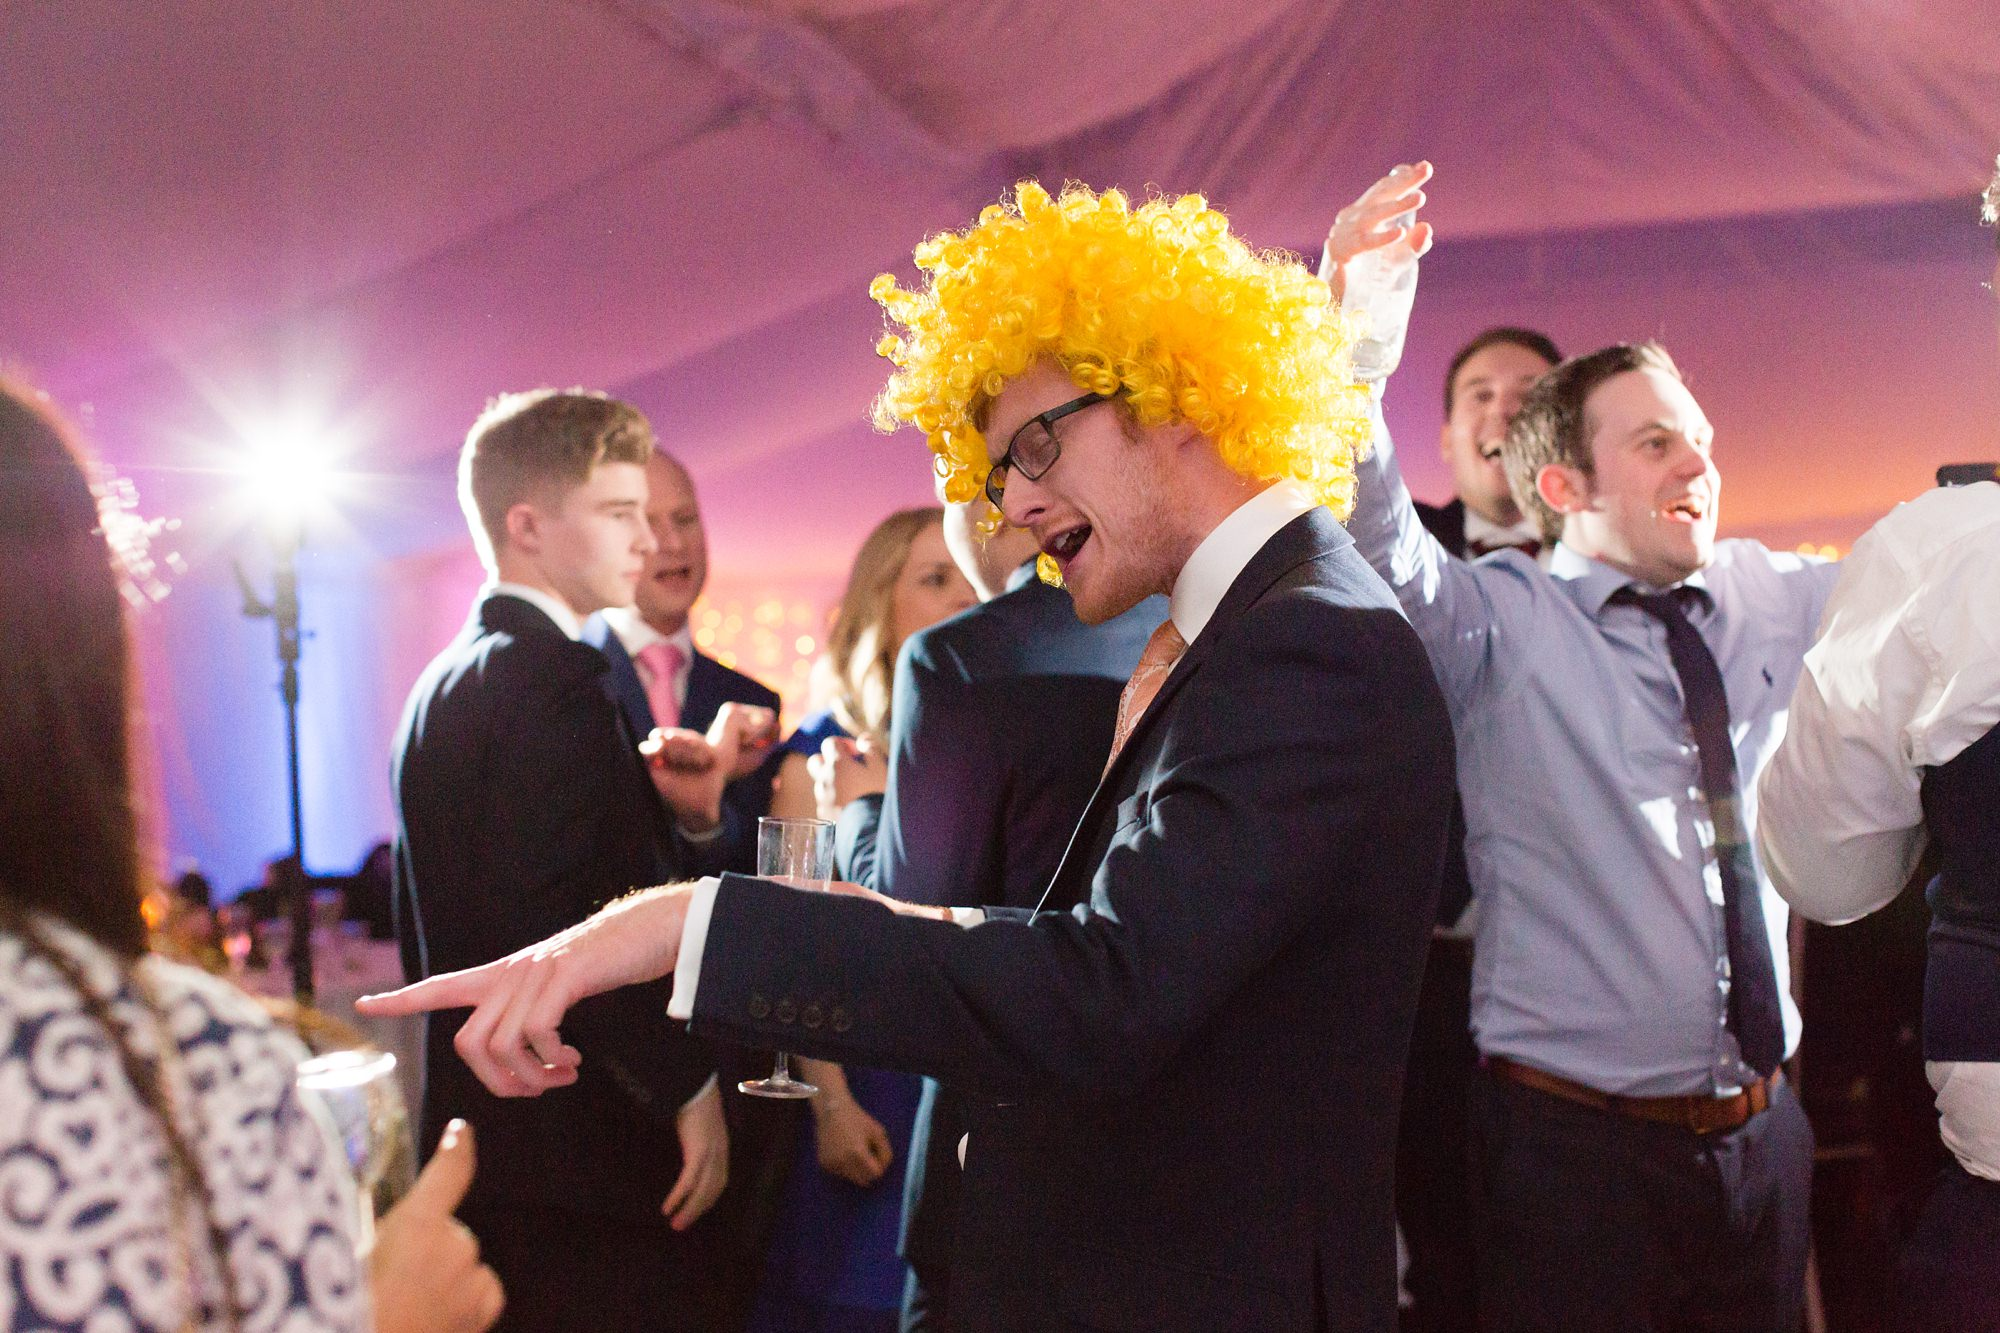 Silly guest wears yellow wig at York wedding